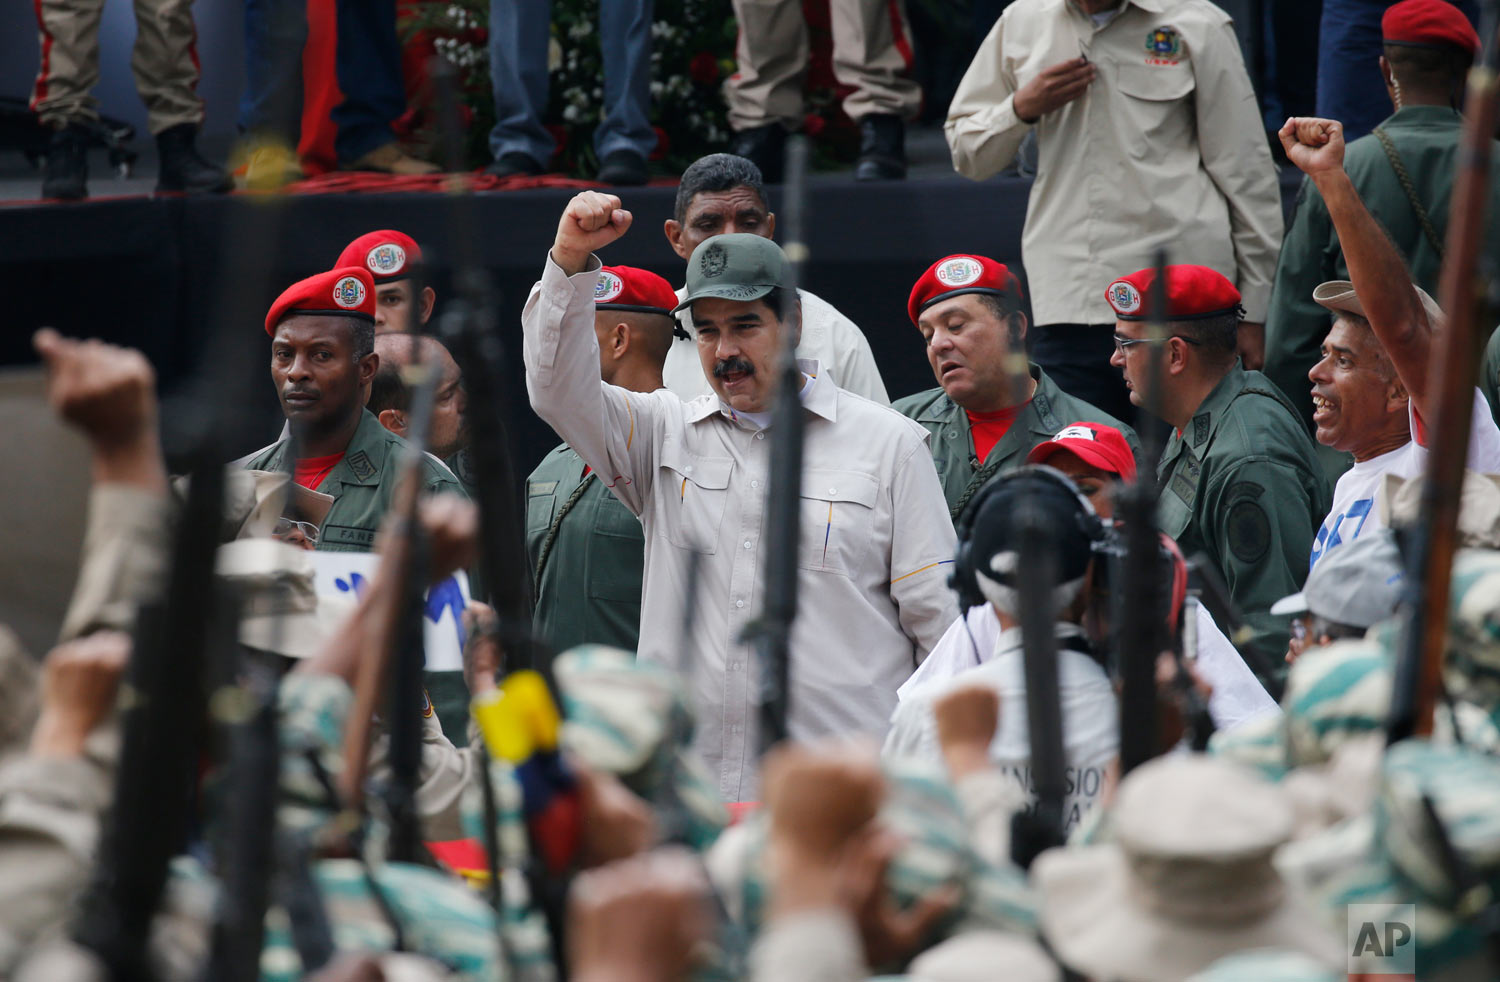 Venezuela's President Nicolas Maduro cheers the Bolivarian Militia during their 10th anniversary celebration in Caracas, Venezuela, Saturday, April 13, 2019. Officially known as the Venezuelan National Bolivarian Militia, it is a branch of the National Armed Forces of Venezuela created by the late President Hugo Chavez and today it is made up of over 2 million men and women. (AP Photo/Ariana Cubillos)